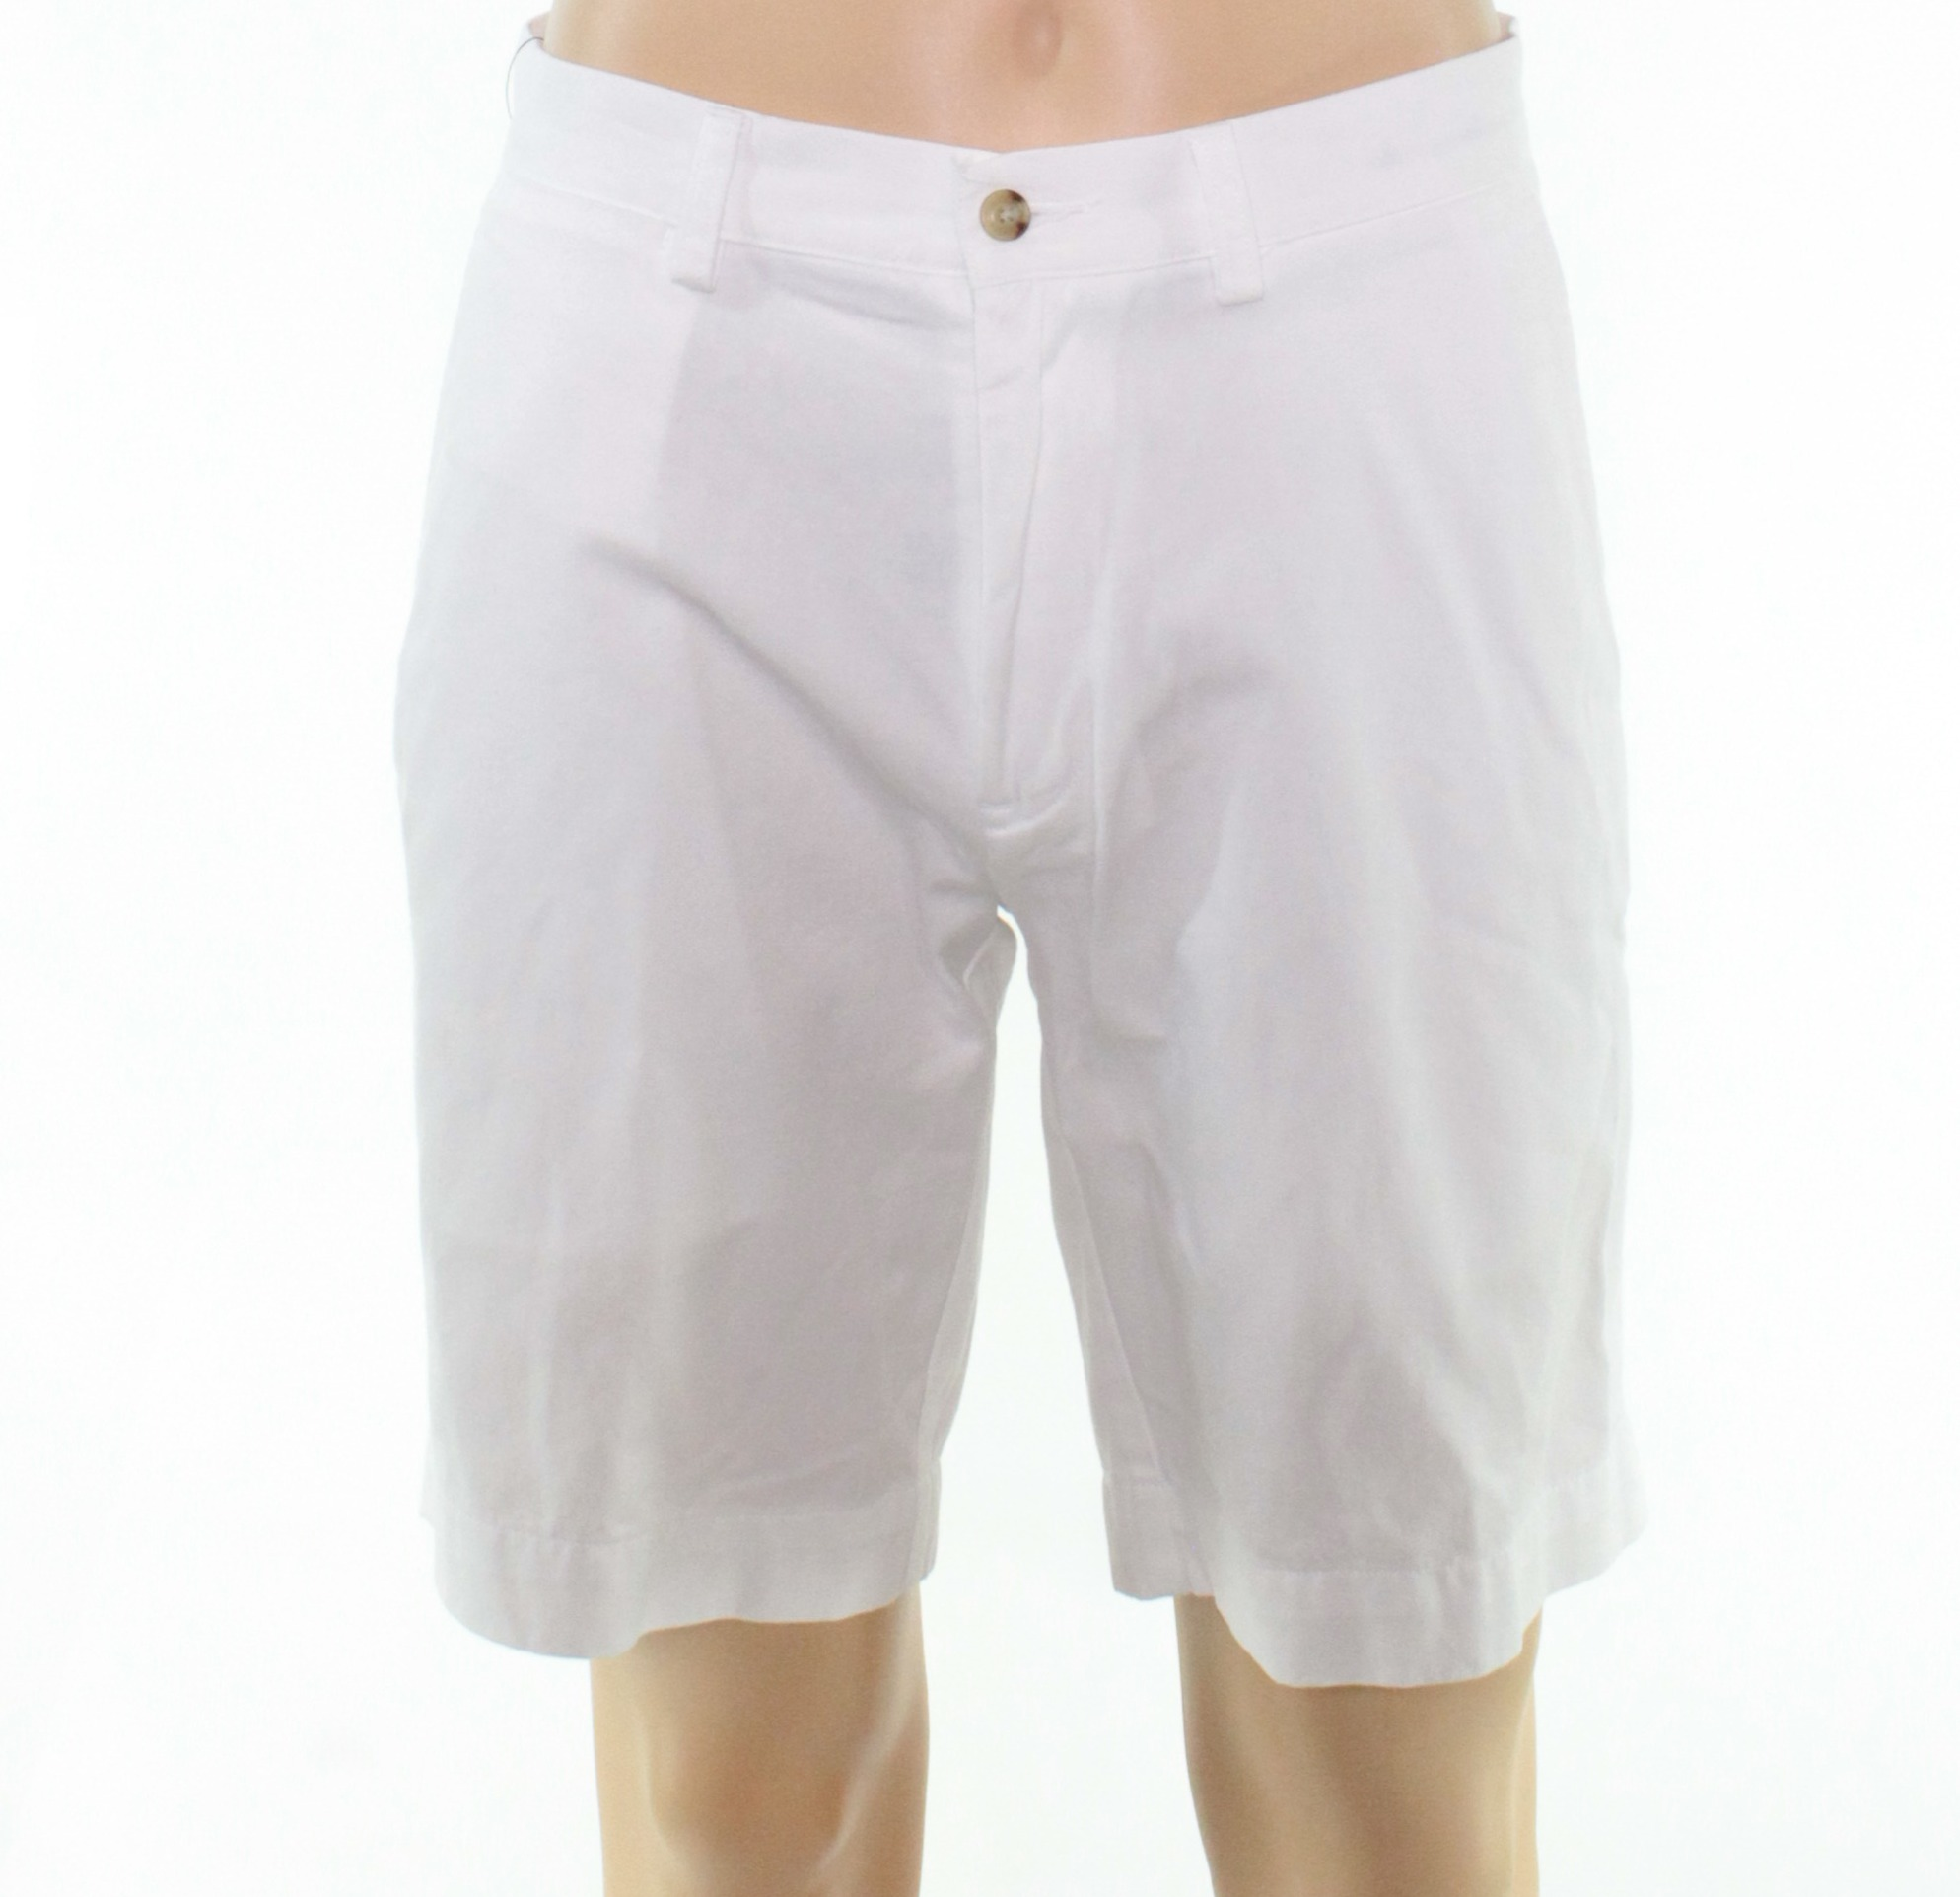 New-Polo-Ralph-Lauren-Mens-Shorts-White-Size-32-Khakis-Chinos-Flat-Front-69-262